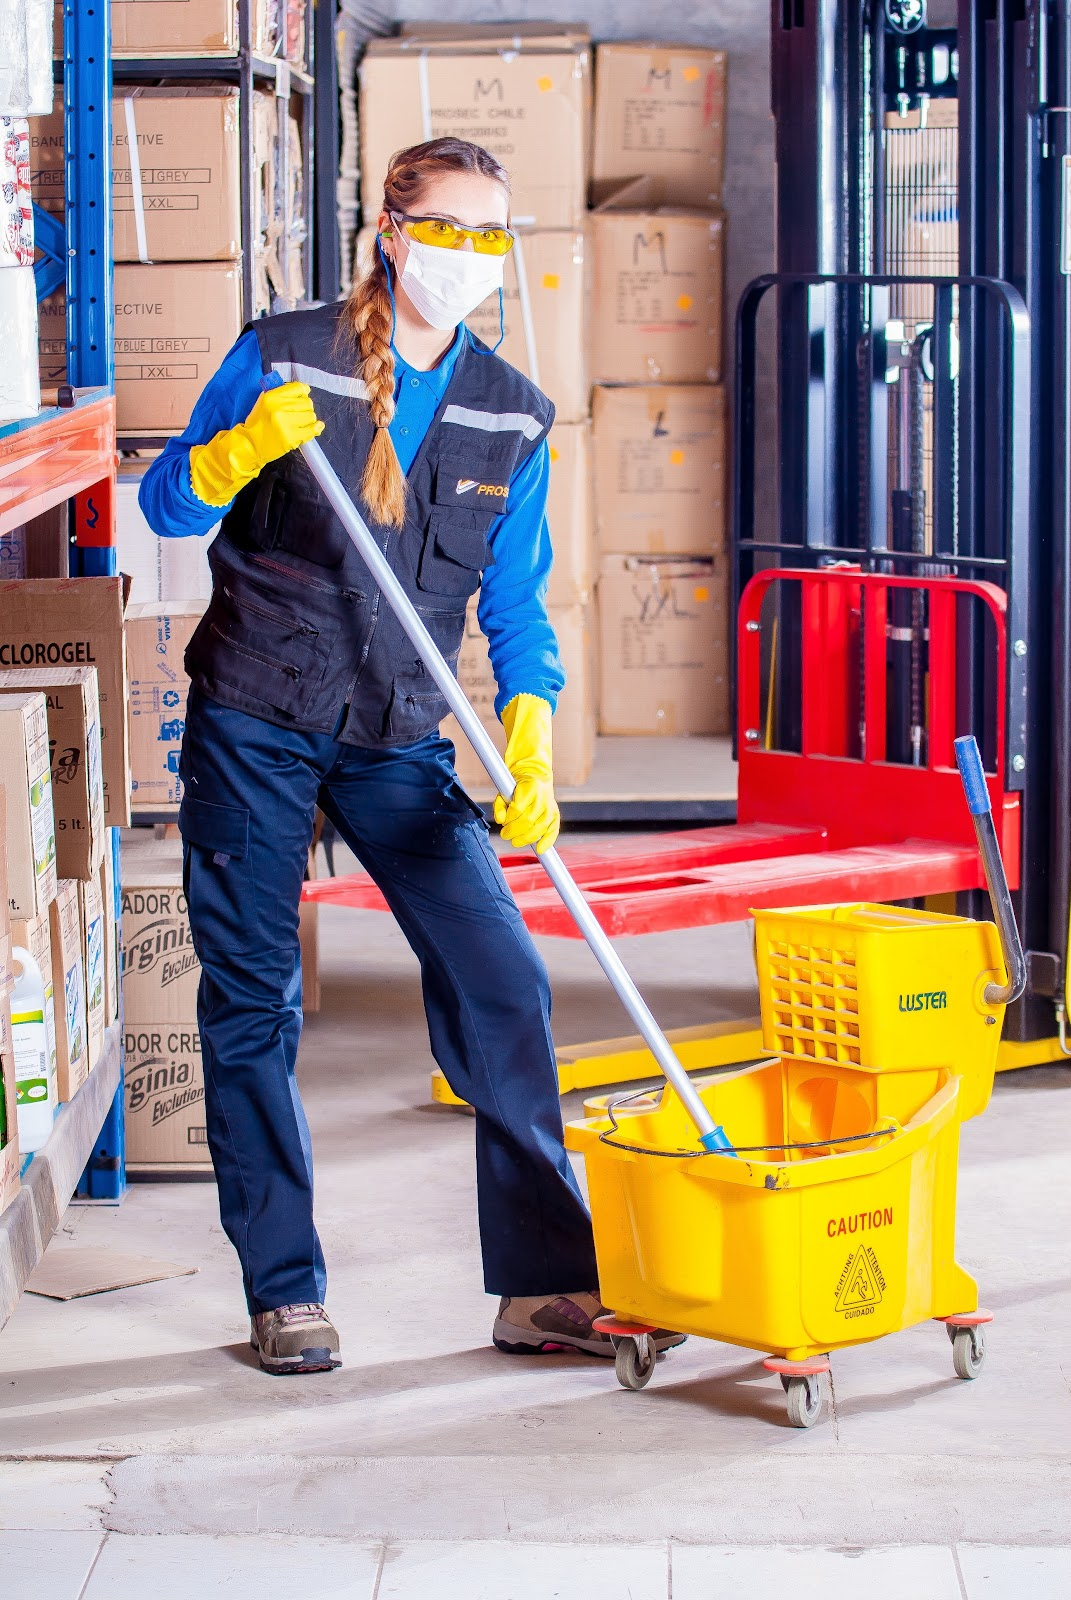 adult-building-business-clean-209271/the world after the corona crisis